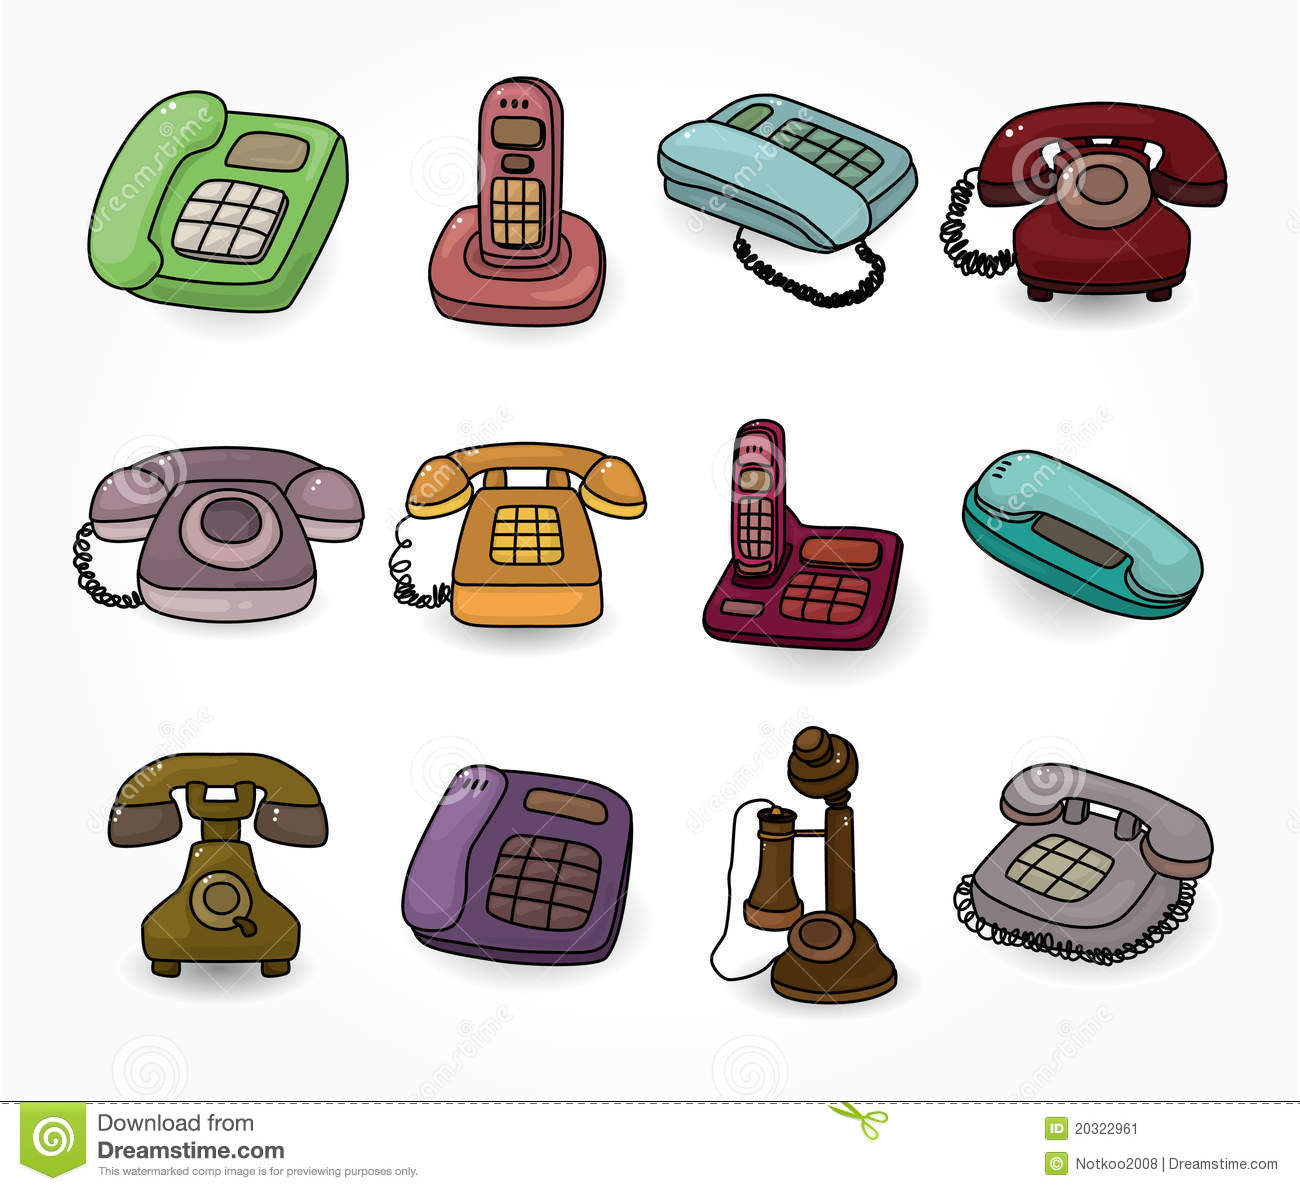 Funny Office Cartoons Phone